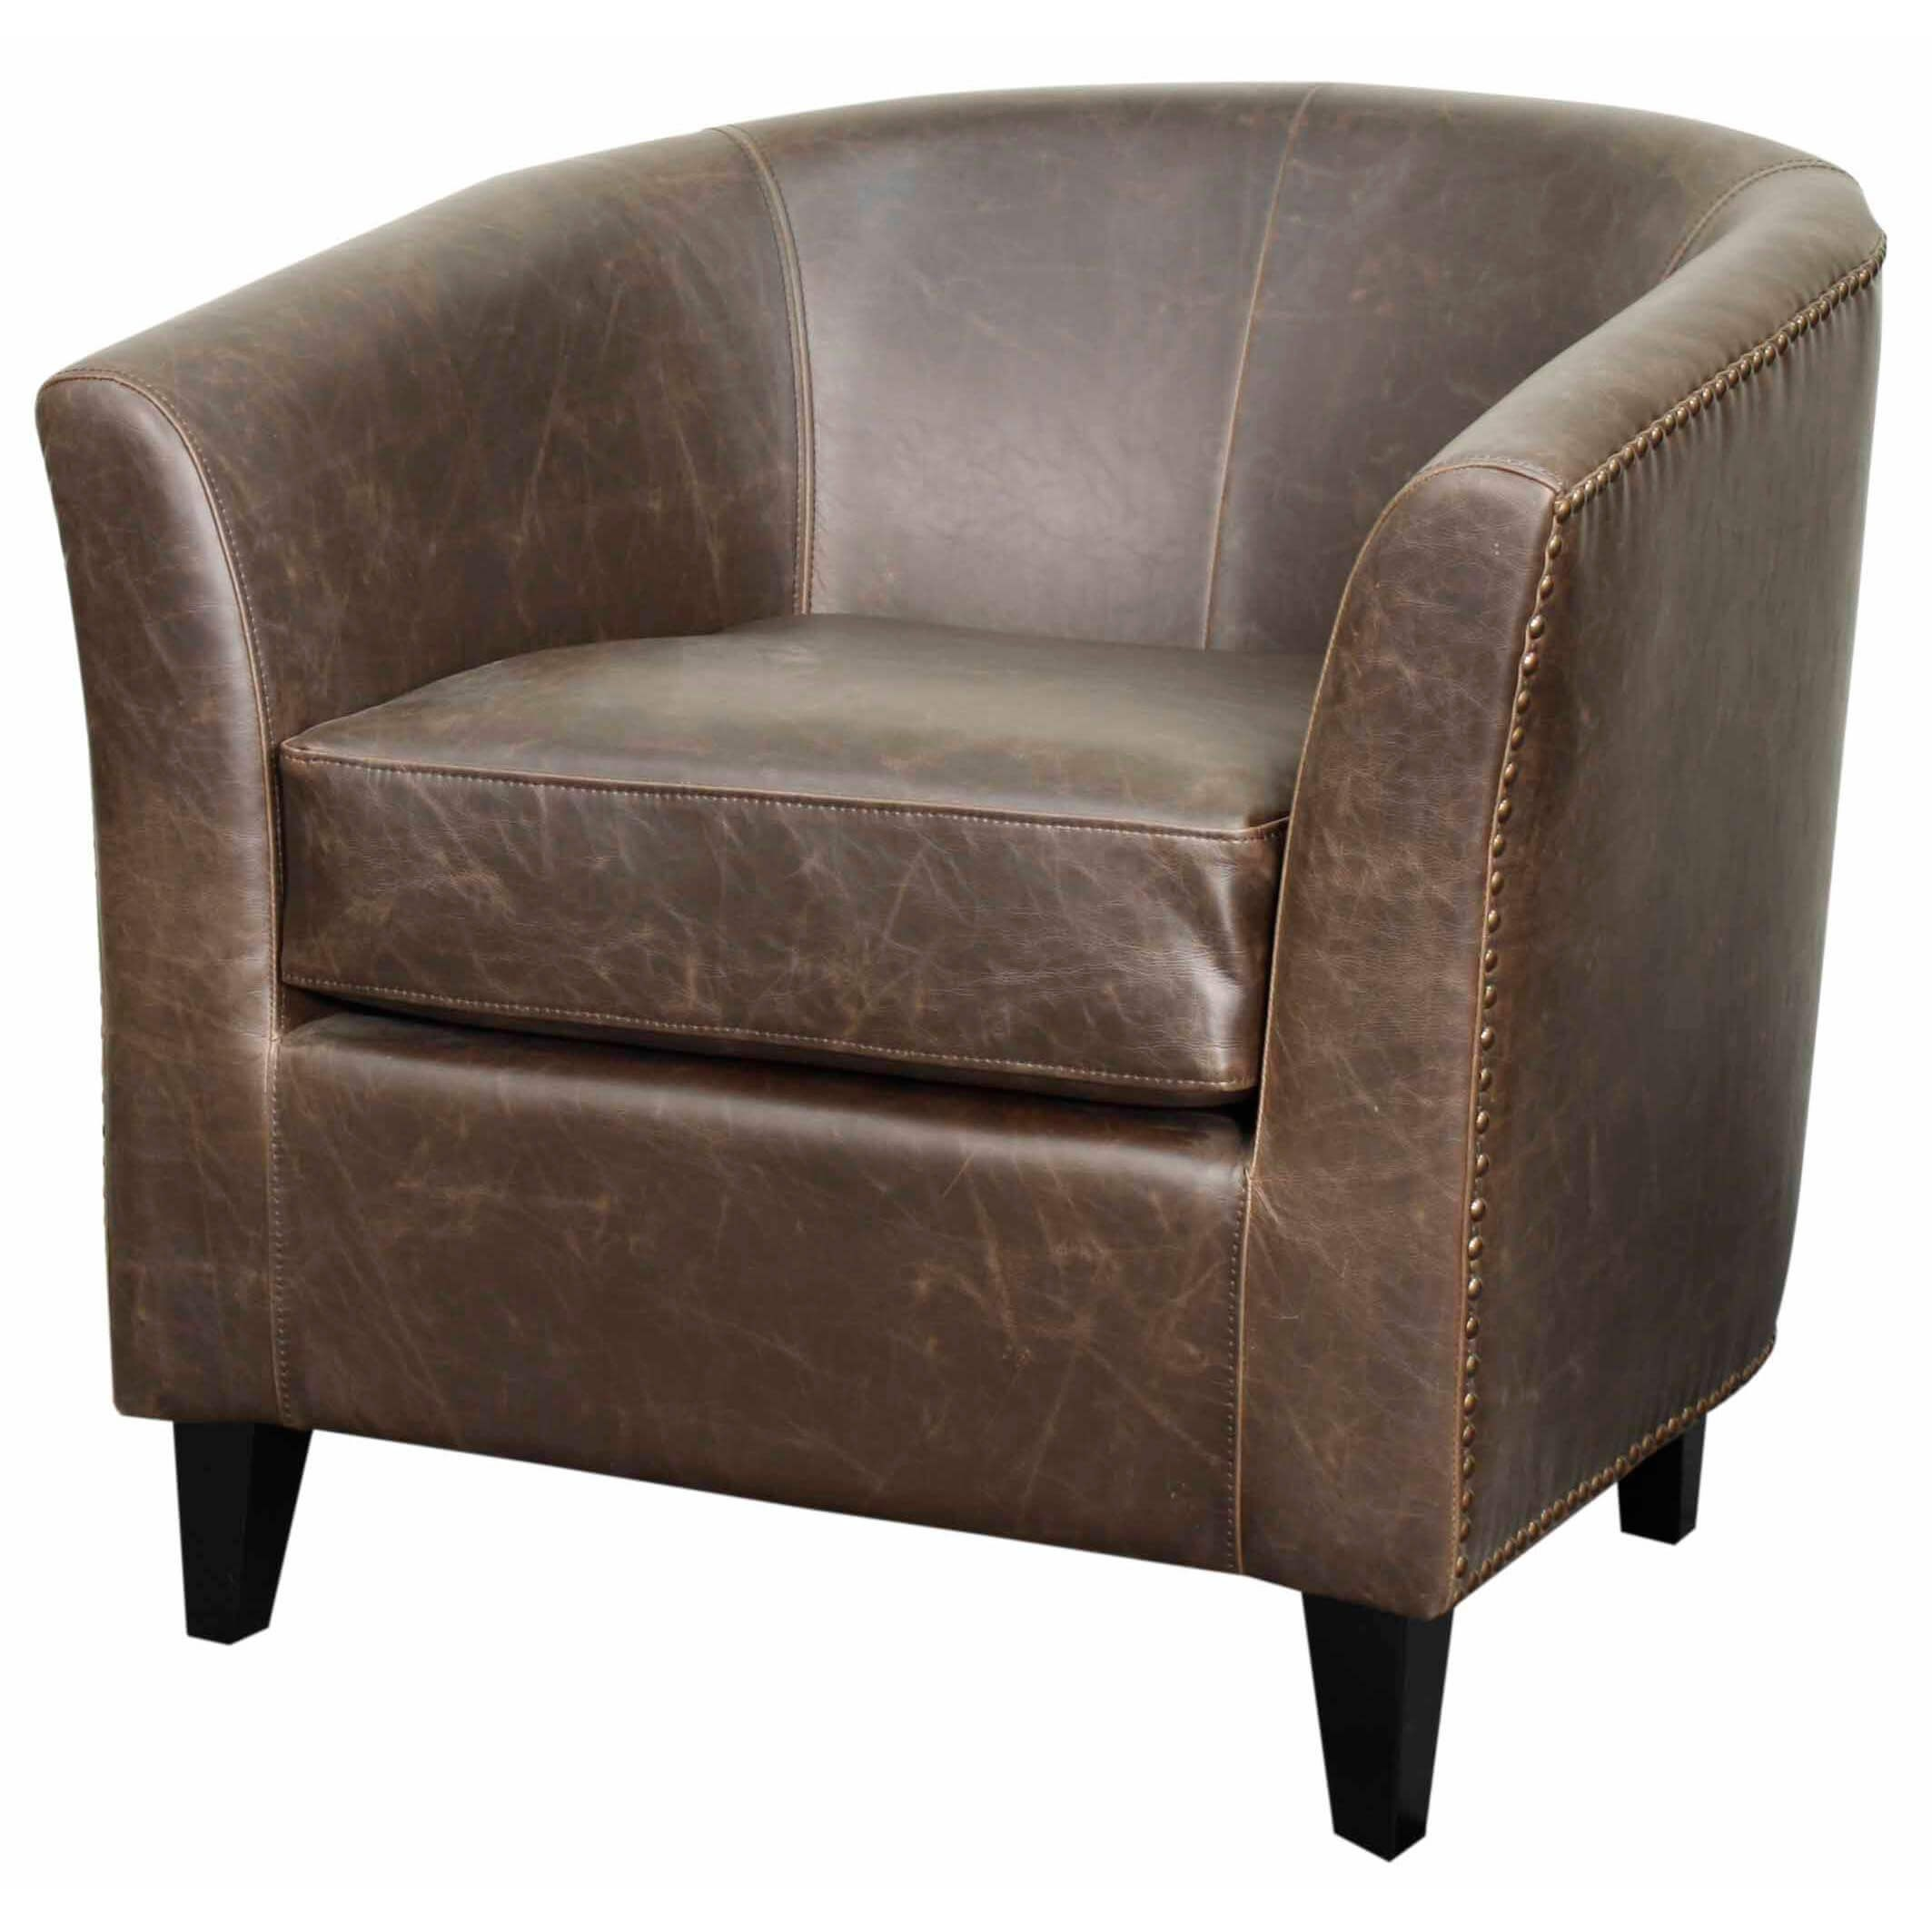 Picture of: Orson Bonded Leather Tub Chair Black Legs Vintage Dark Brown By Npd New Pacific Direct Furniture Sohomod Com